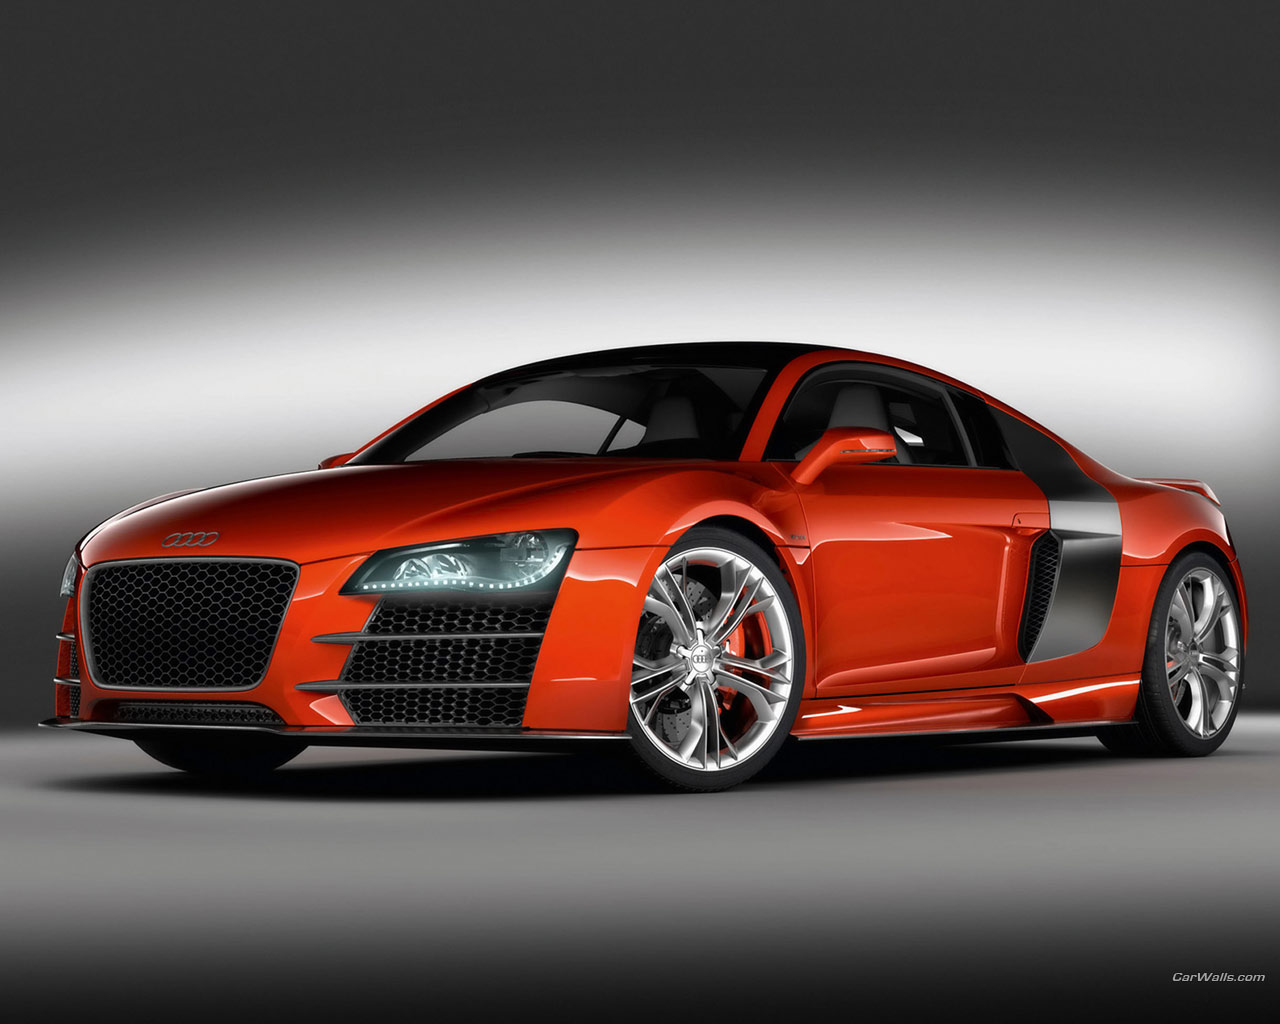 20 Best Sports Cars Wallpapers Download For Free